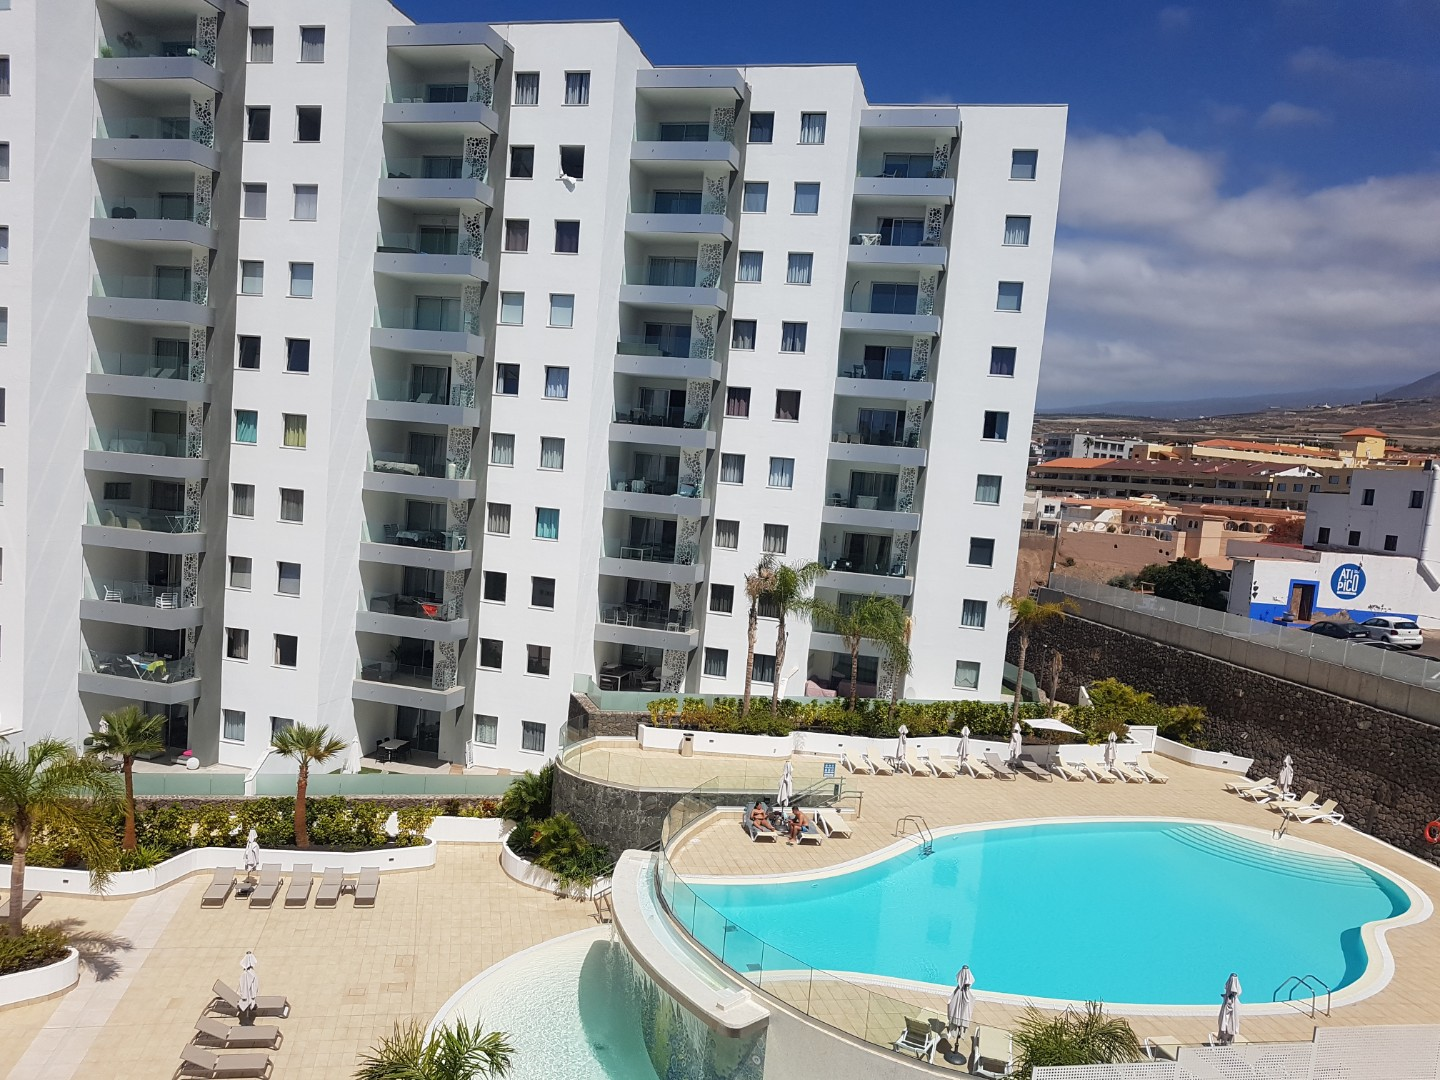 Apartment for rent Playa Paraiso Adeje - ref. 1915472 ...